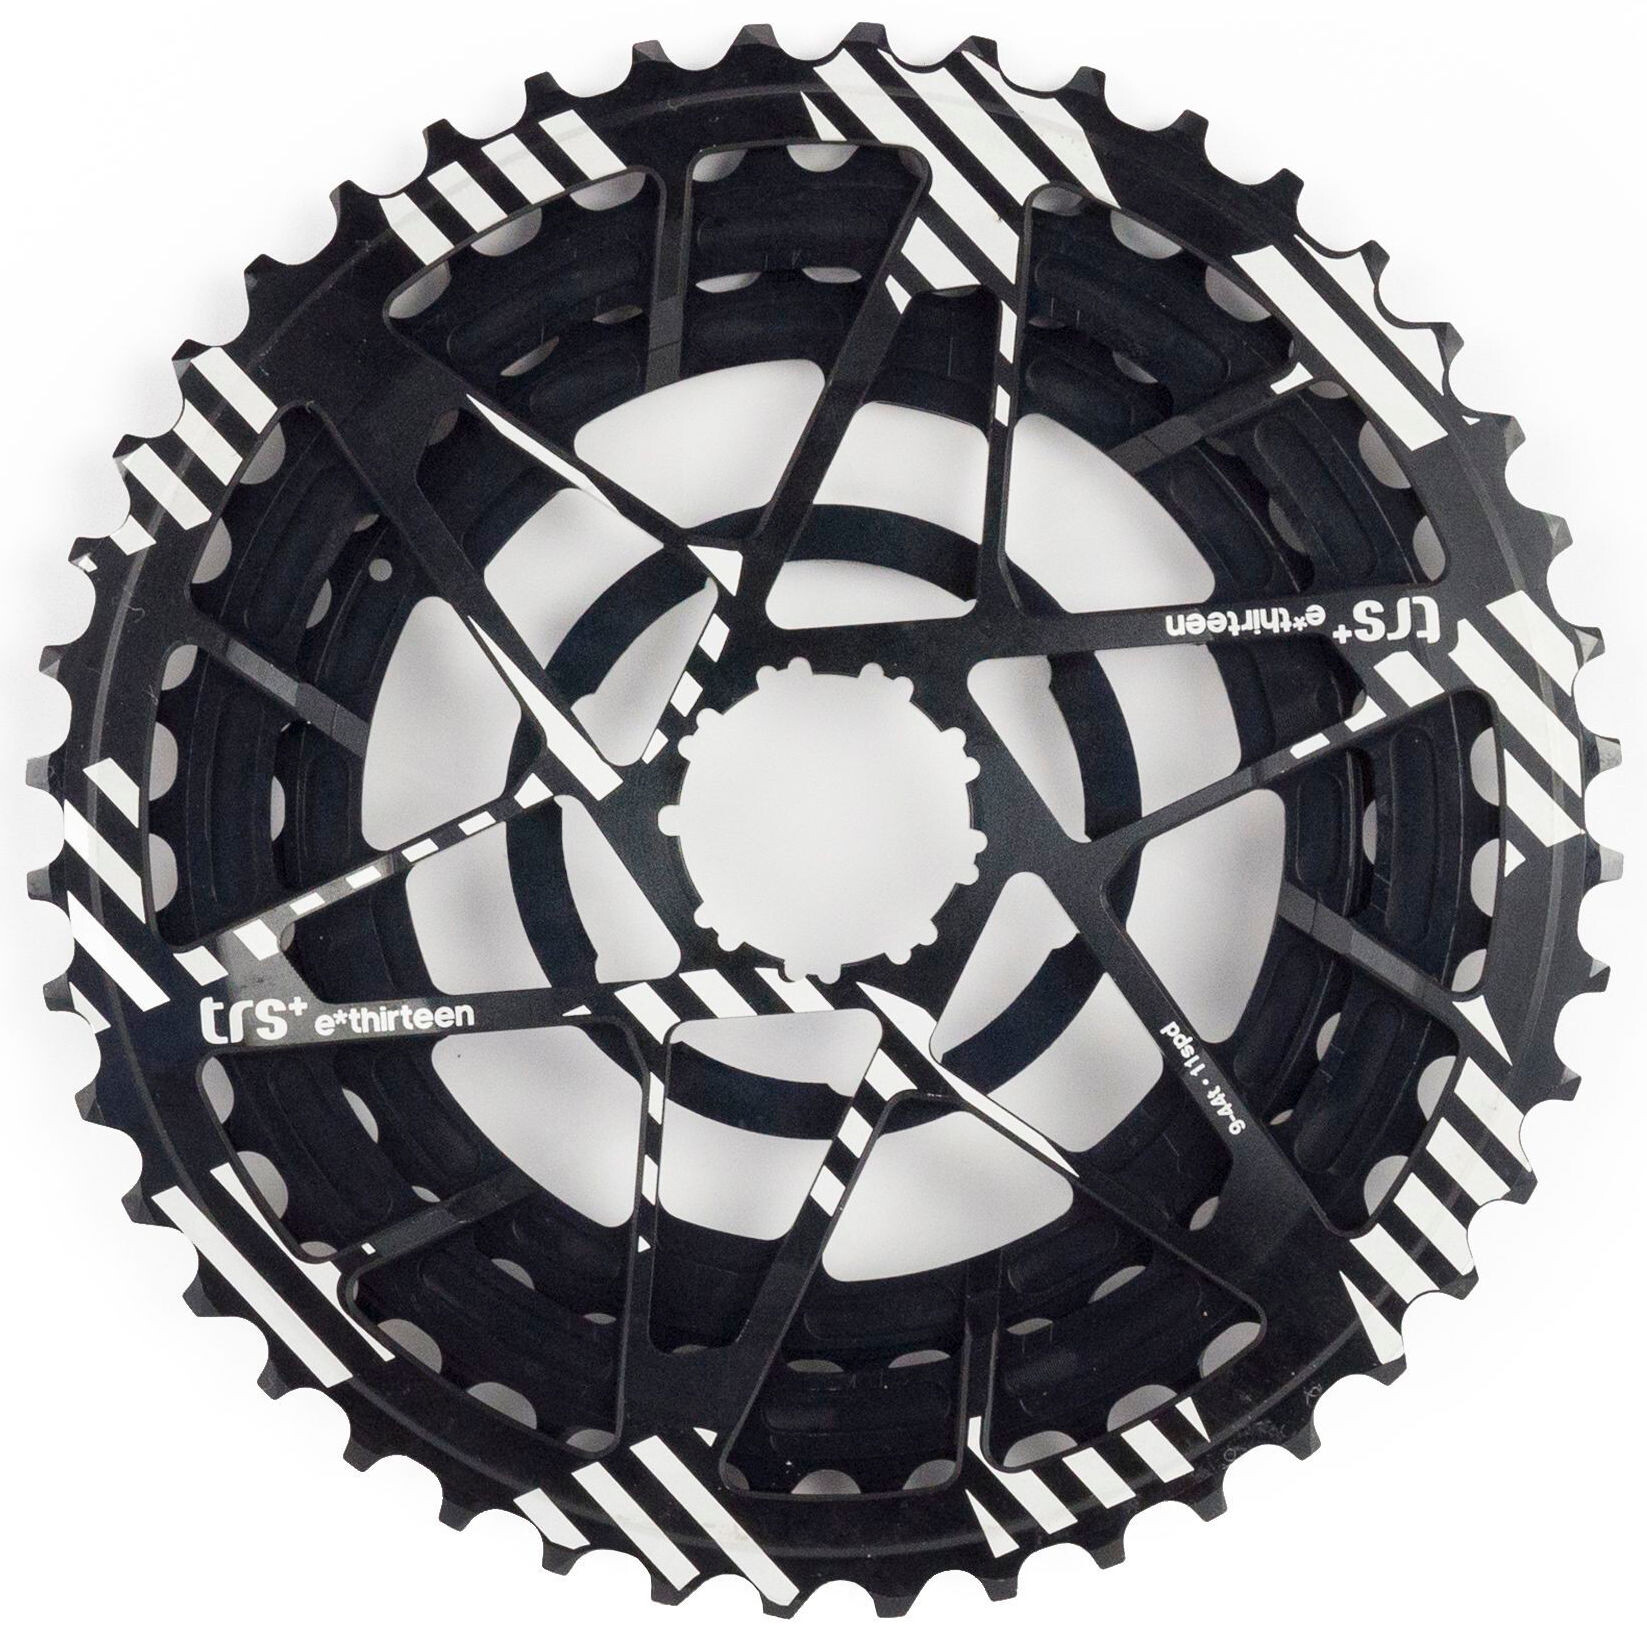 e*thirteen Aluminum diced Sprockets 32-38-44 for TRS + cassette 11-compartment, black | item_misc